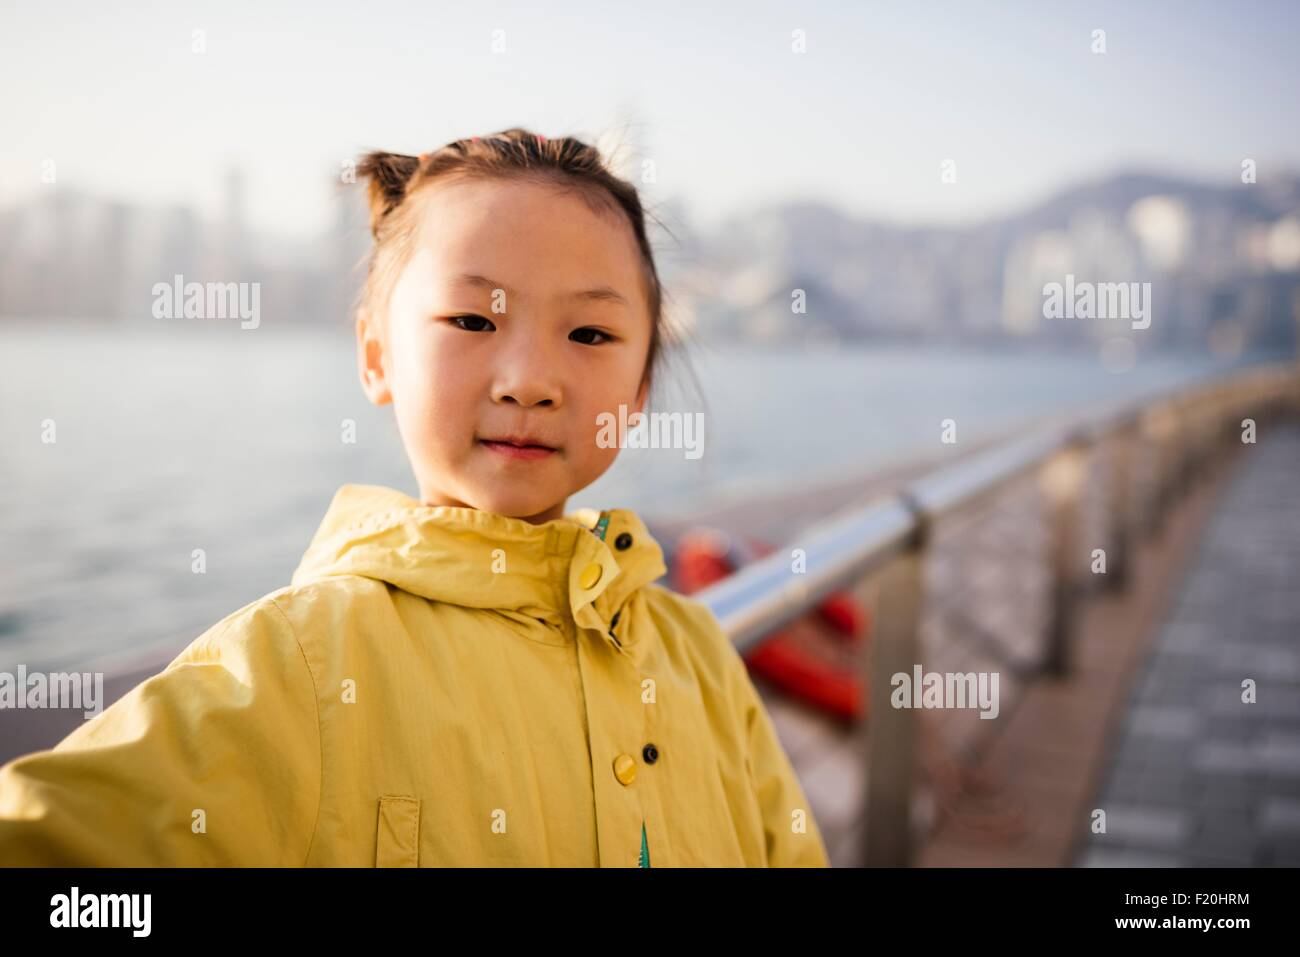 Portrait of young girl wearing yellow coat in front of water looking at camera - Stock Image